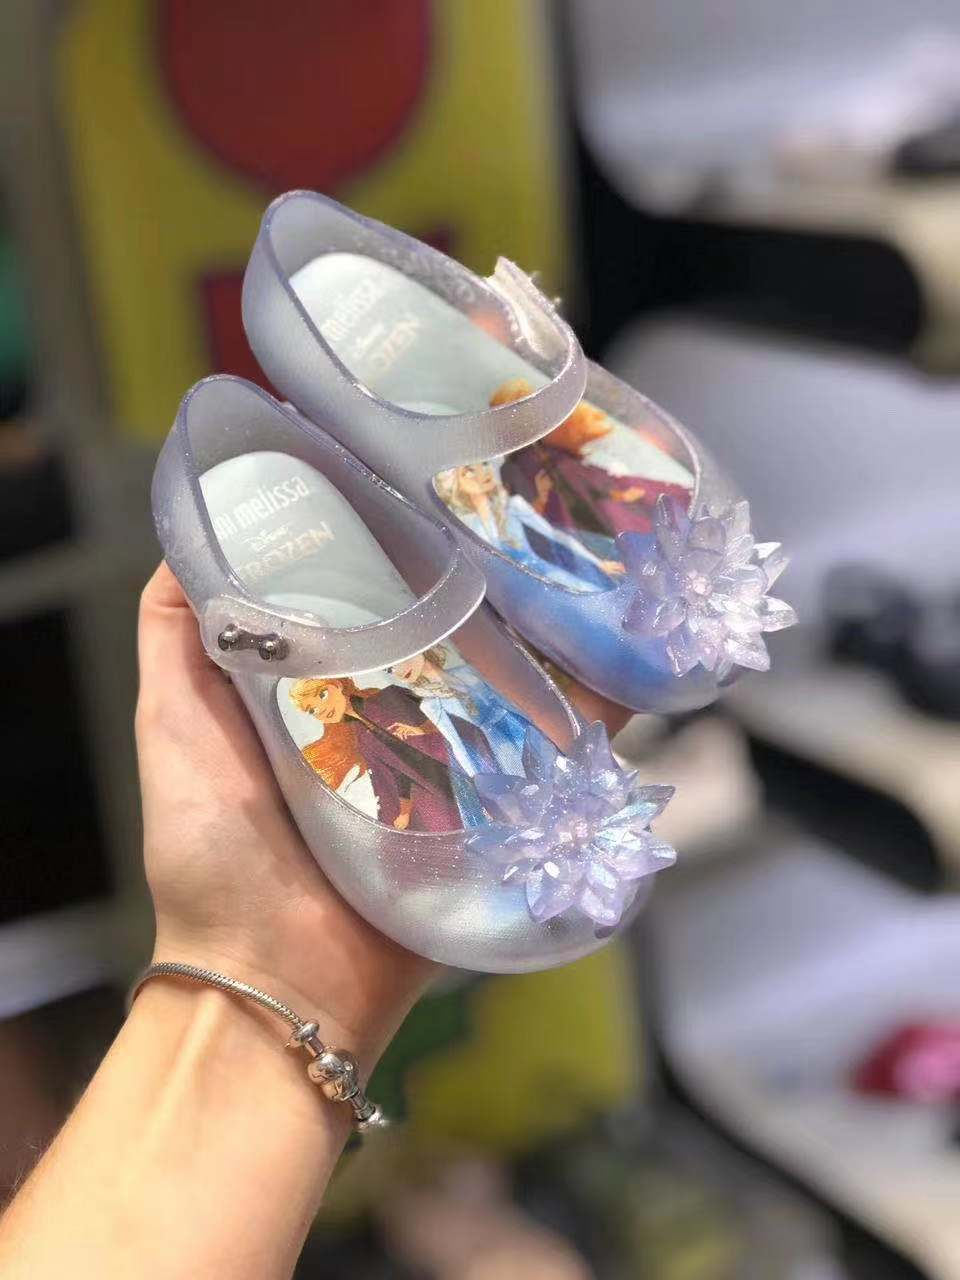 Big Size Mini Melissa Princess Jelly Shoes Kids Girl Fashion Bowknot Sandals Big Children Froze Candy Shoes SH19111